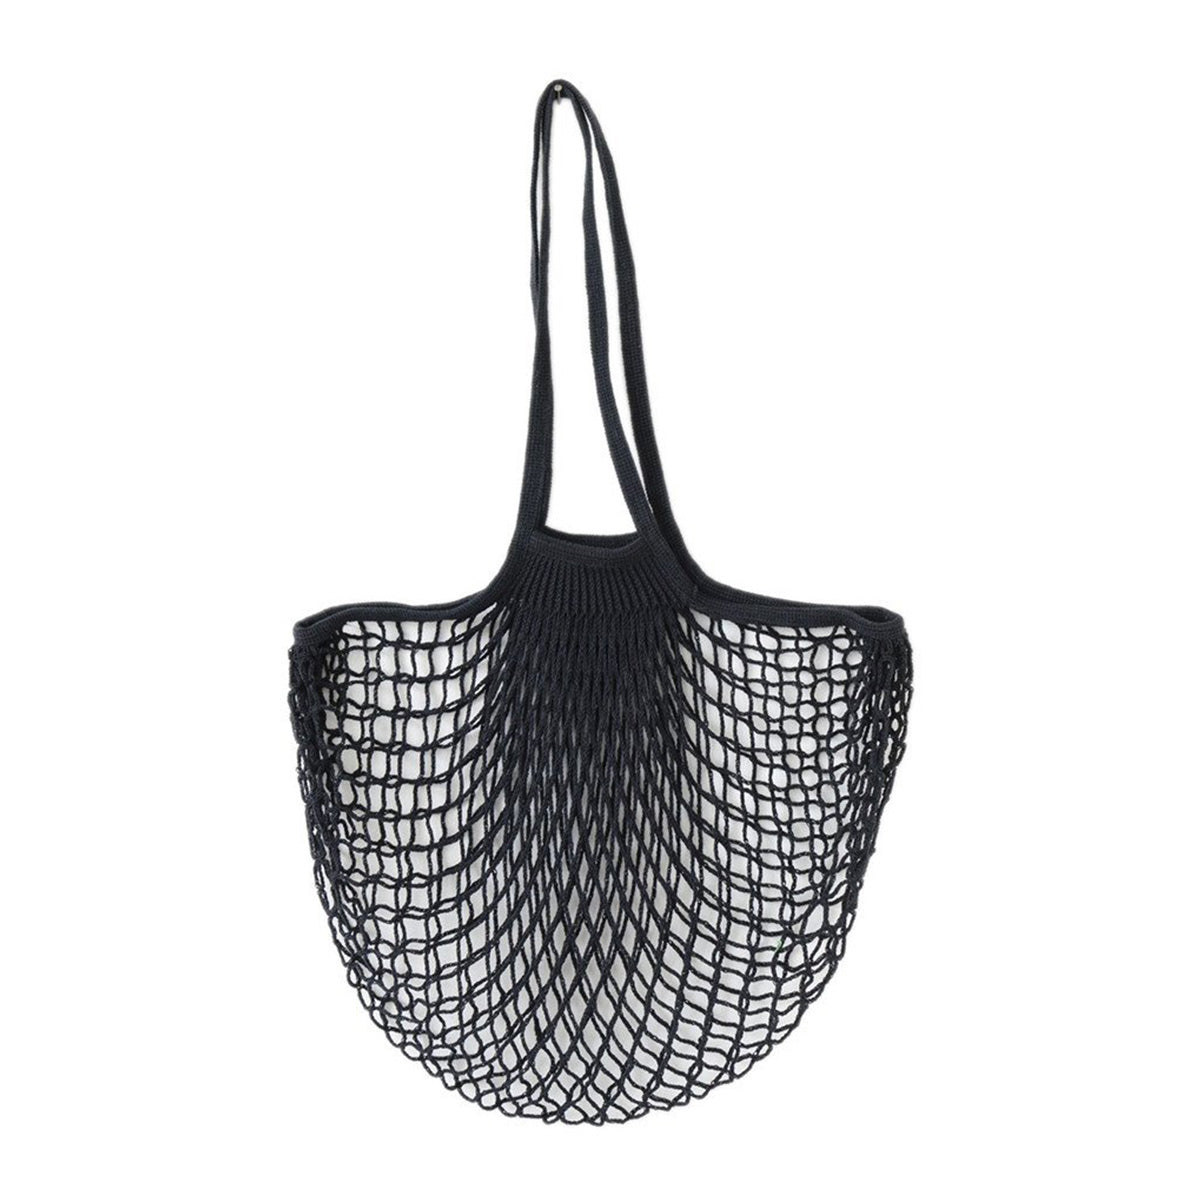 Filt France Net Bags - Long Handle Net Bag - Natural - Net Bags - Sustainable Living - Environmentally Friendly - Net Bags - Say No To Plastic - Black | Freyr and Fell